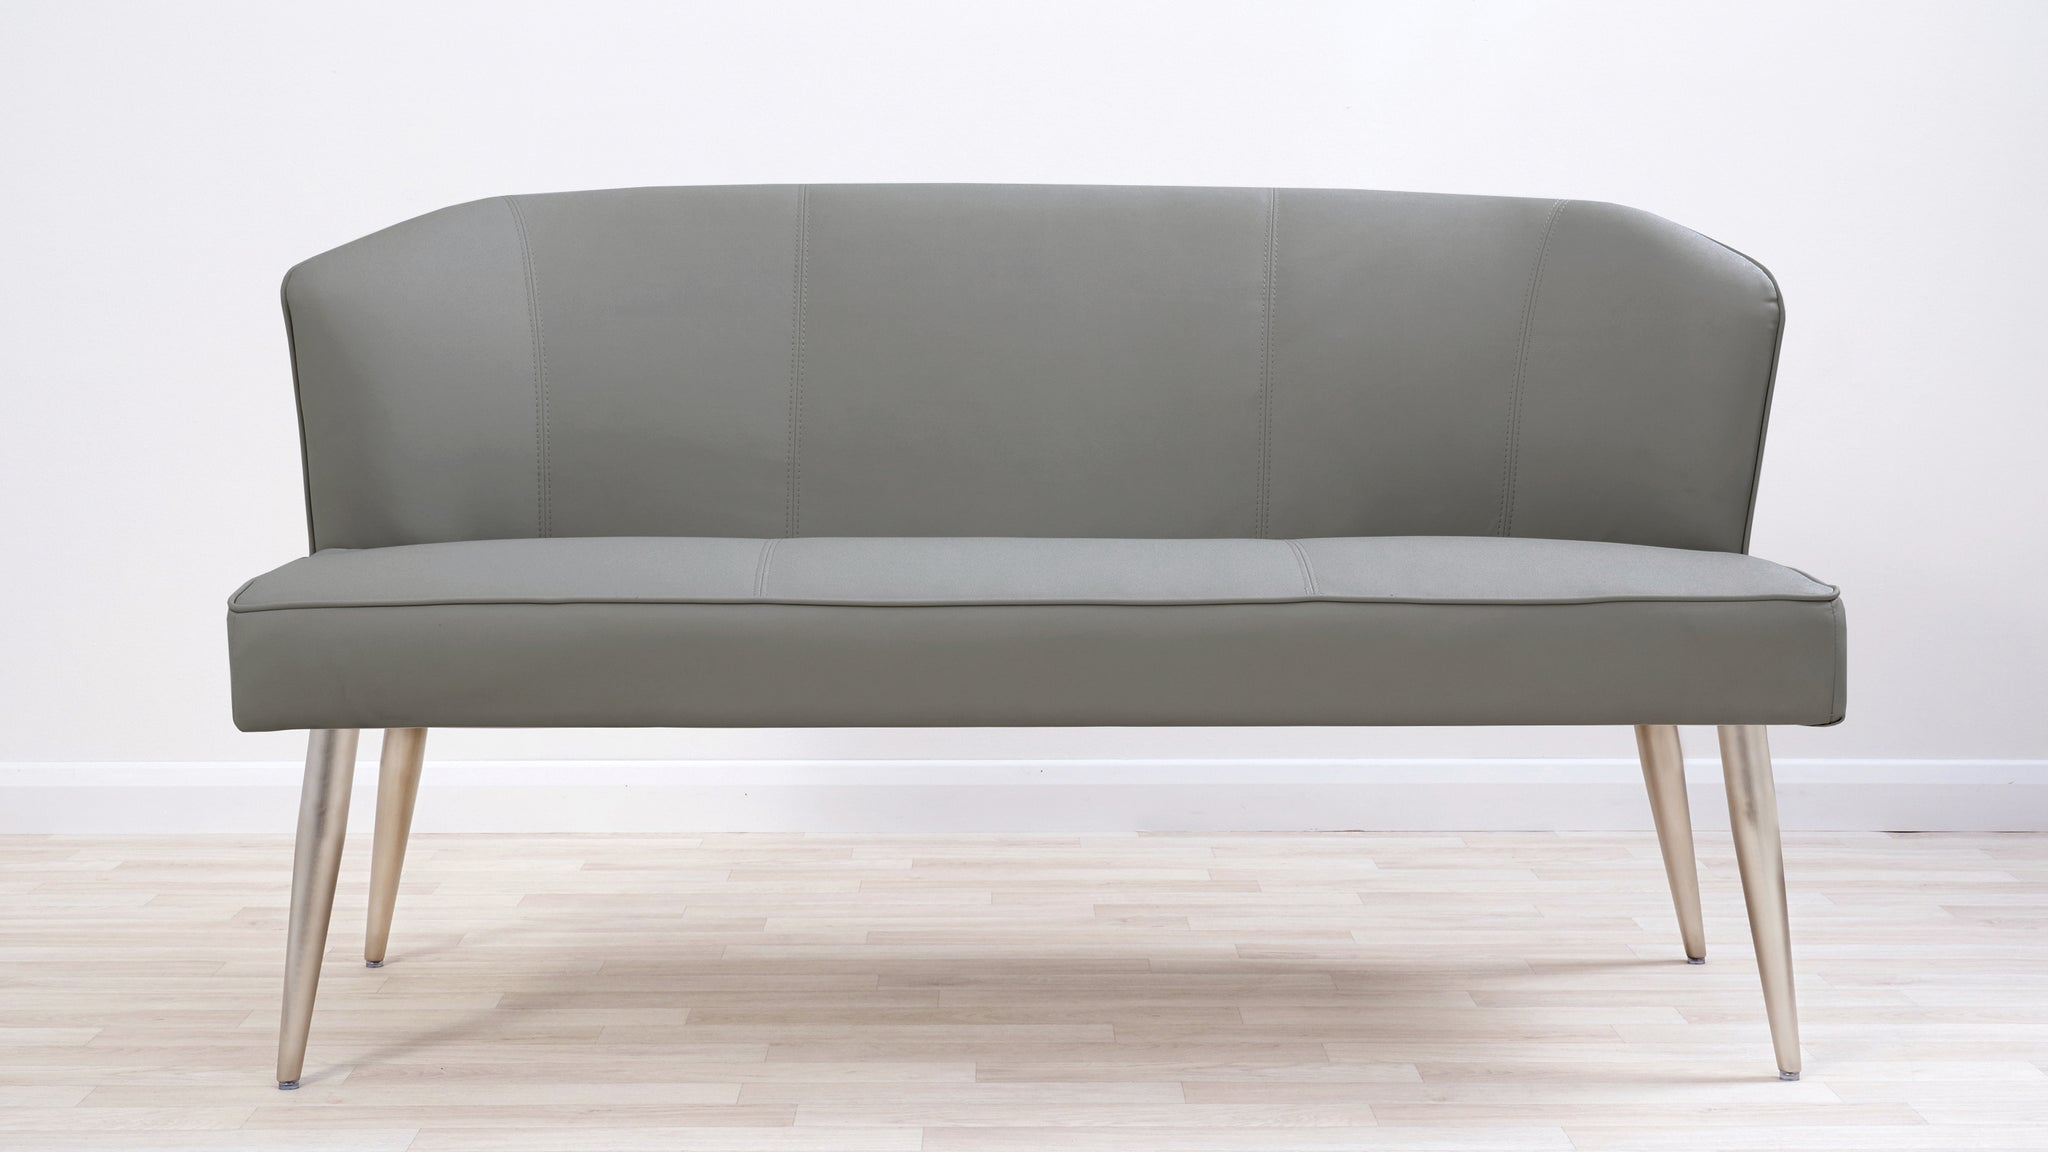 Mellow Grey Faux Leather Stainless Steel 3 Seater Dining Bench With Backrest